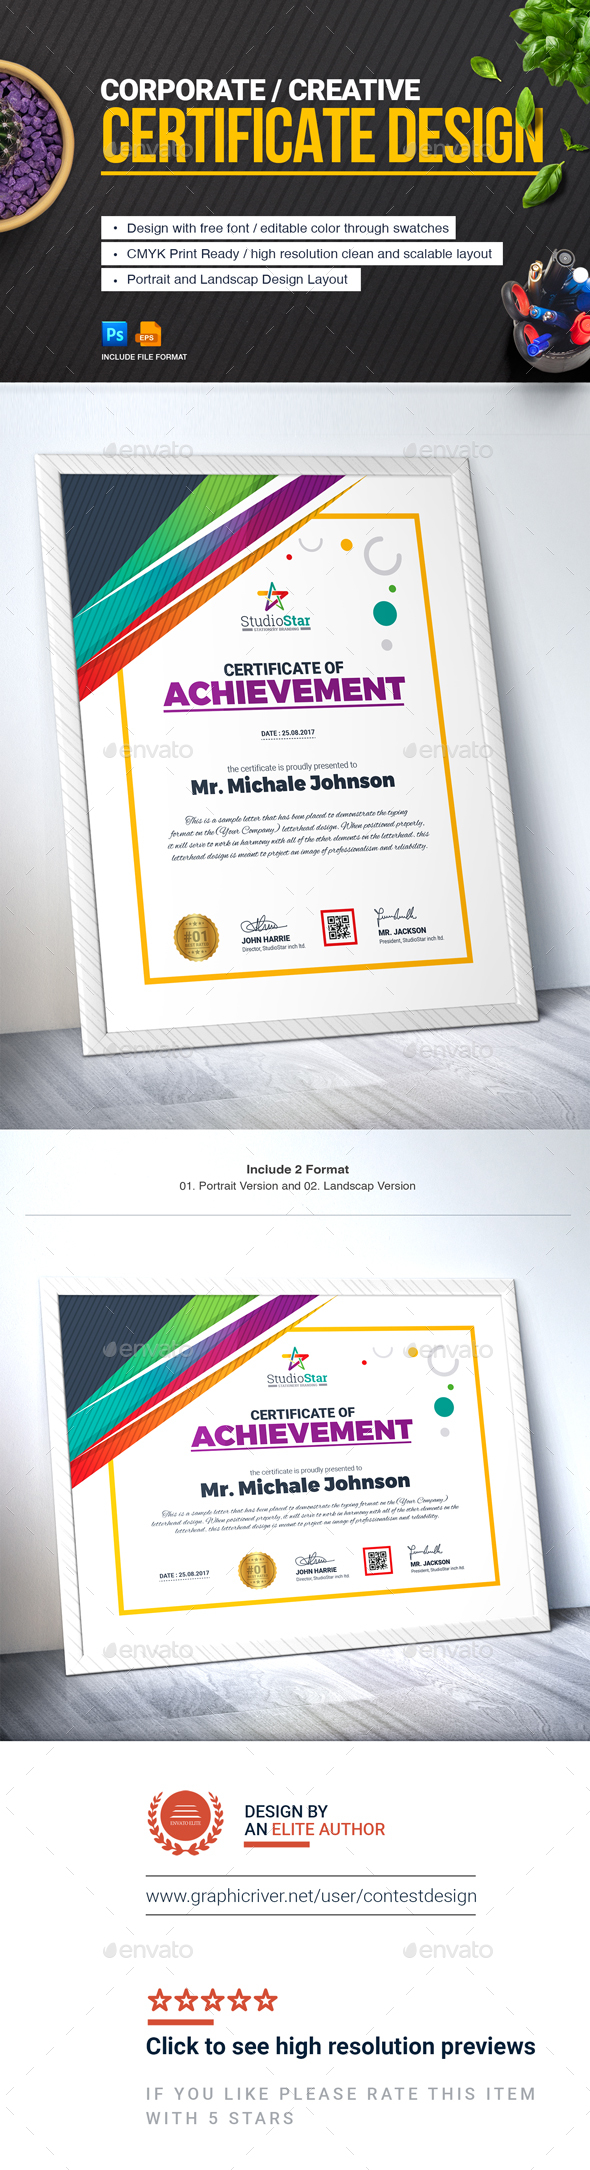 Welding certificate templates free printable tinkytyler for Welding certificate template